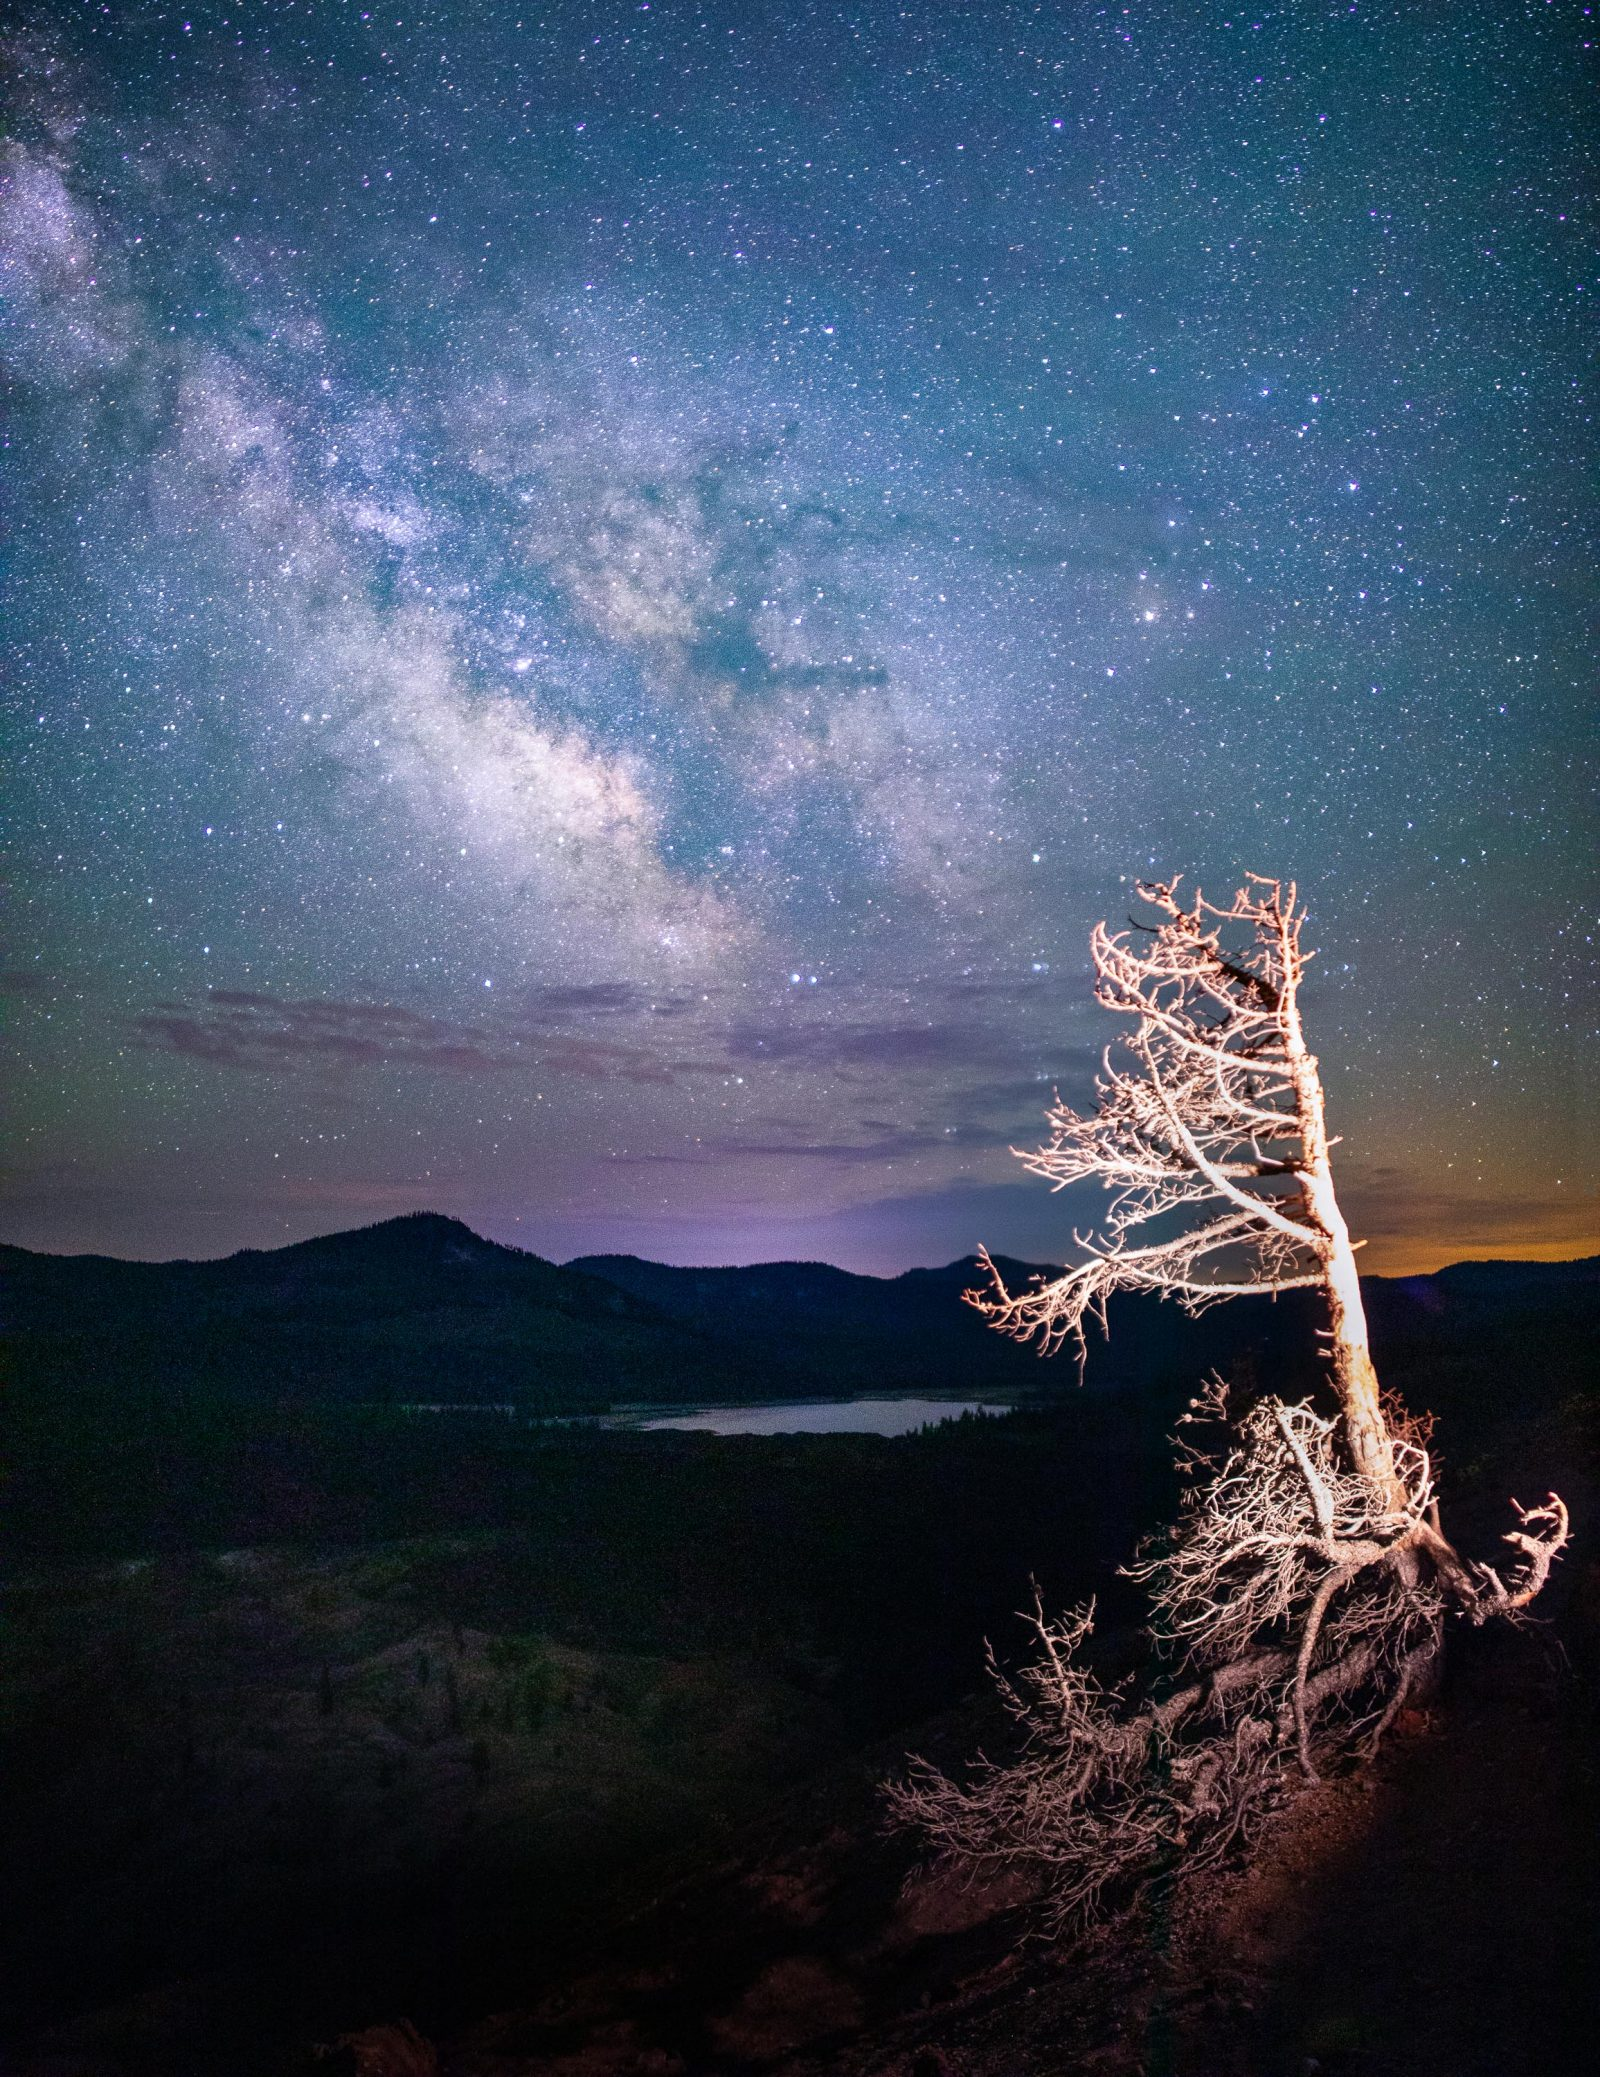 Milky Way View from Cinder Cone, Lassen Volcanic National Park